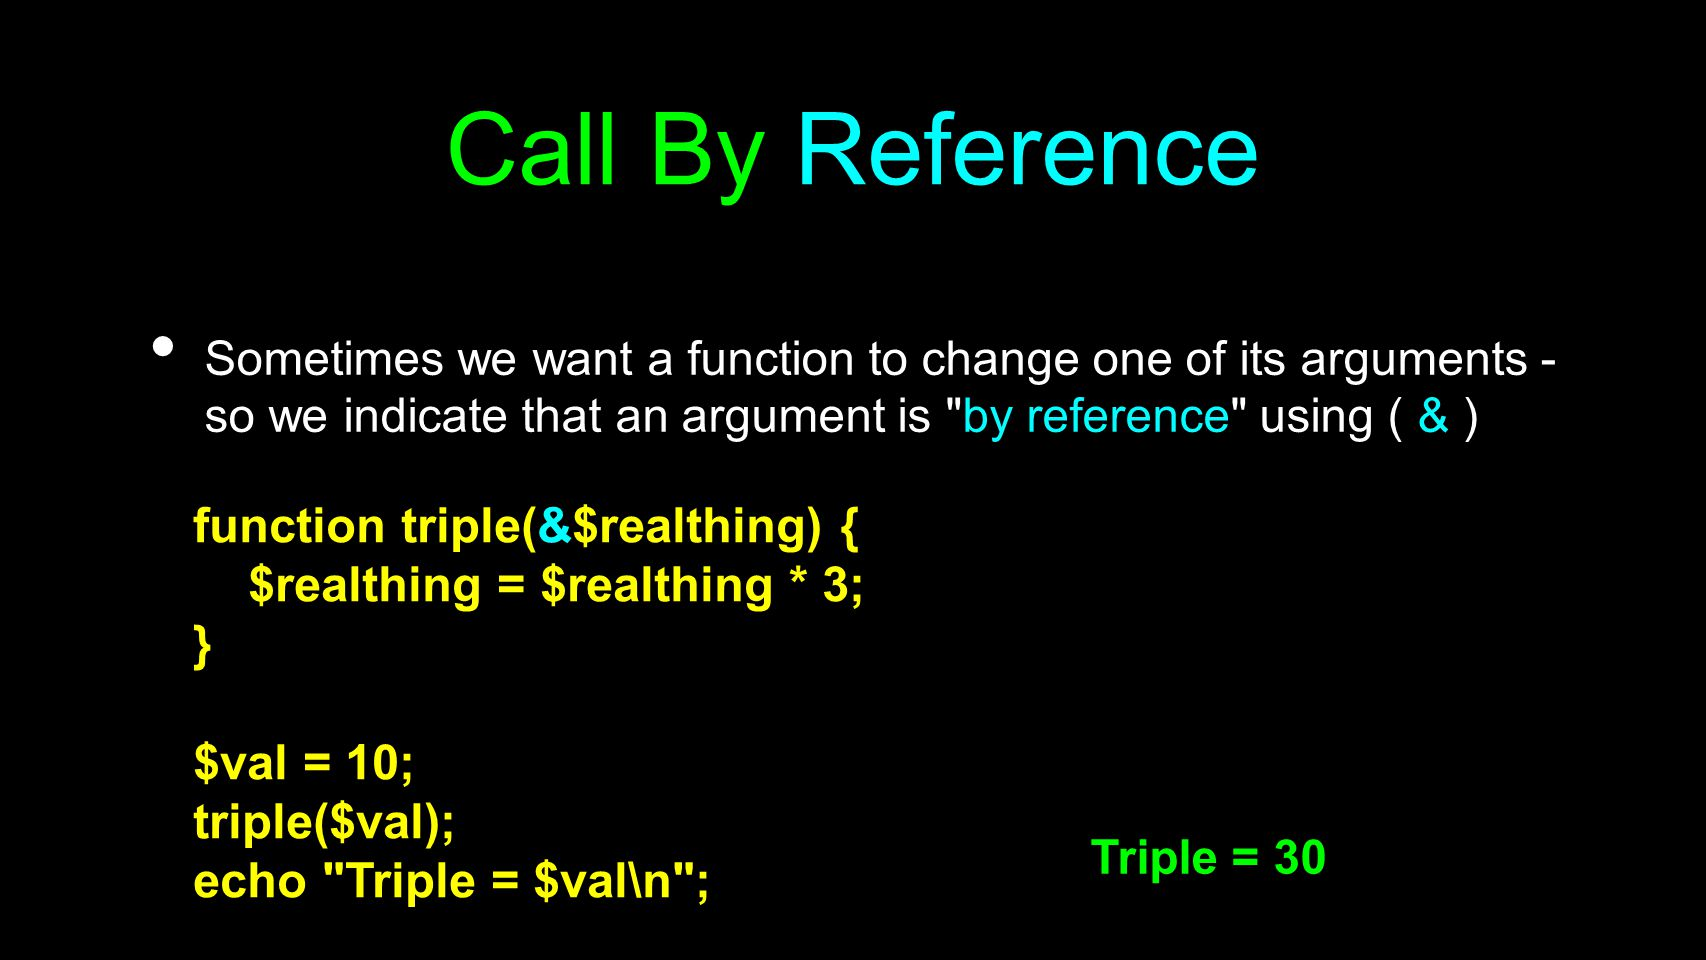 Call By Reference Sometimes we want a function to change one of its arguments - so we indicate that an argument is